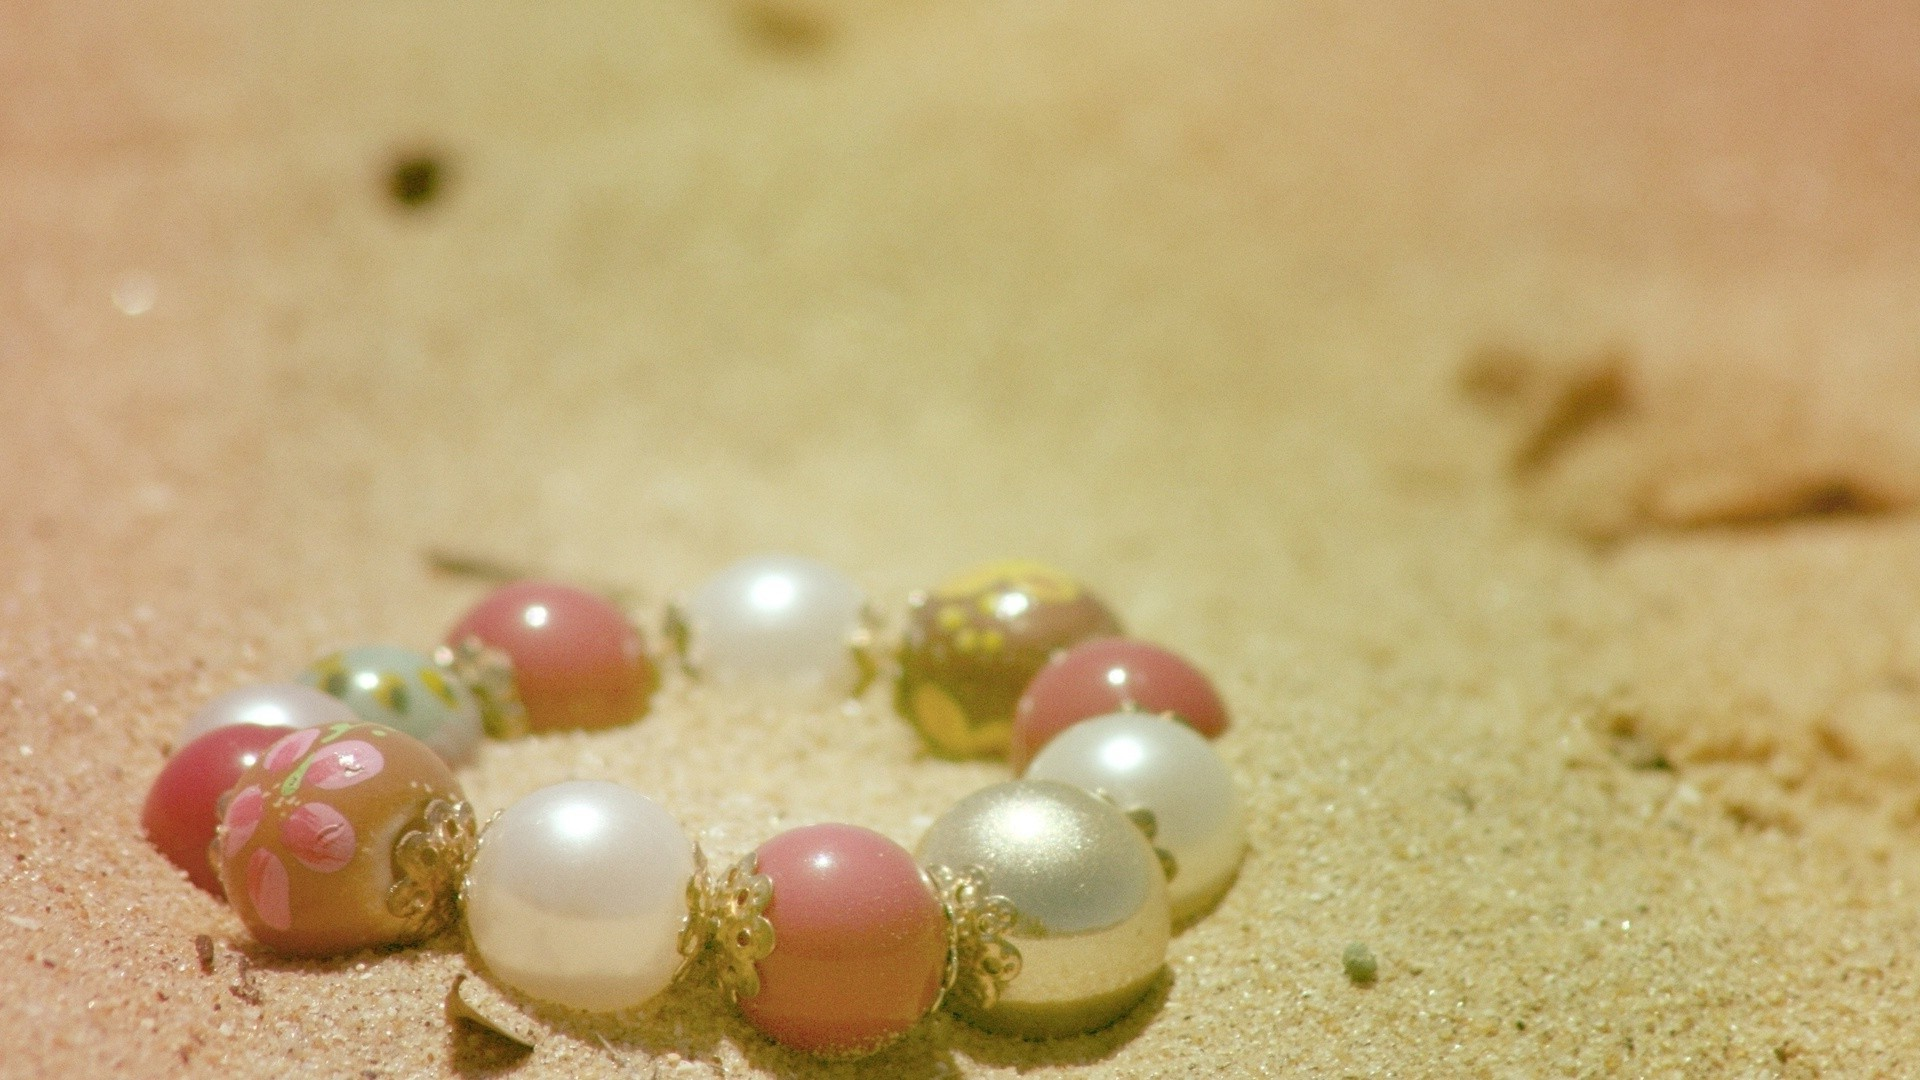 Beads in the sand